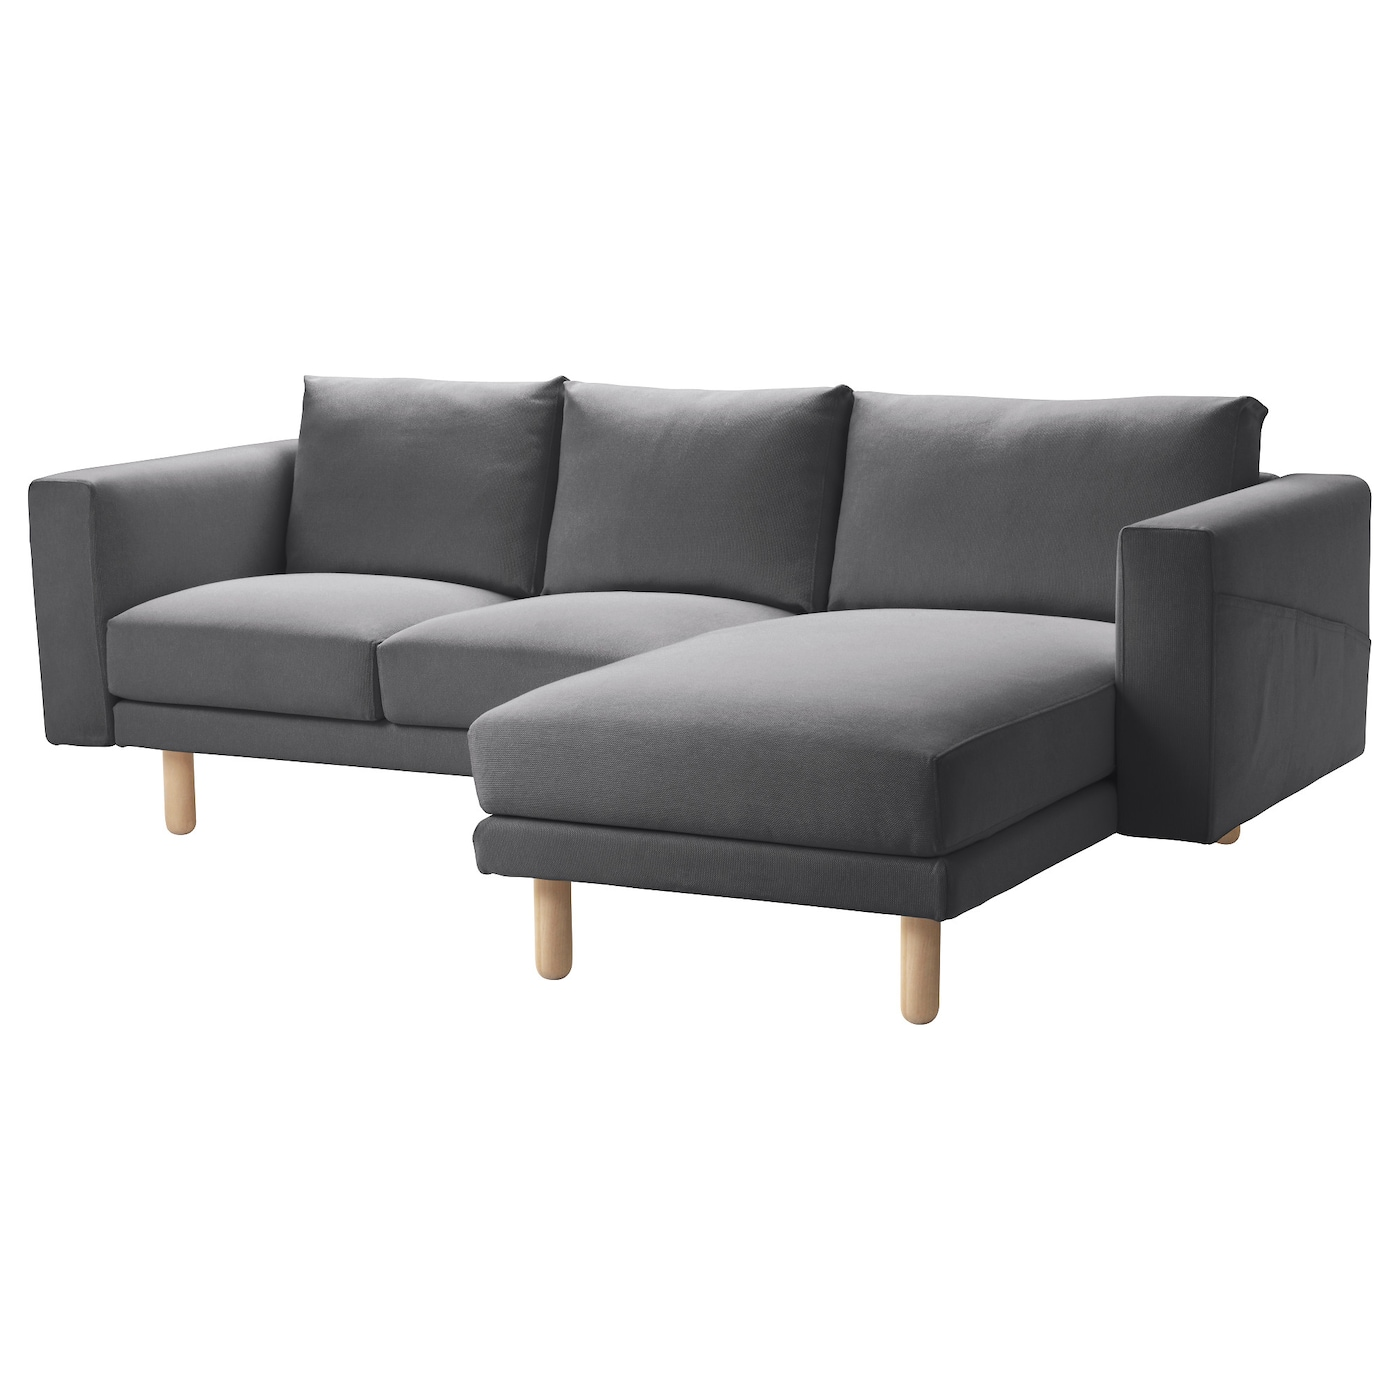 Norsborg 3 seat sofa with chaise longue finnsta dark grey for 3 seat sofa with chaise